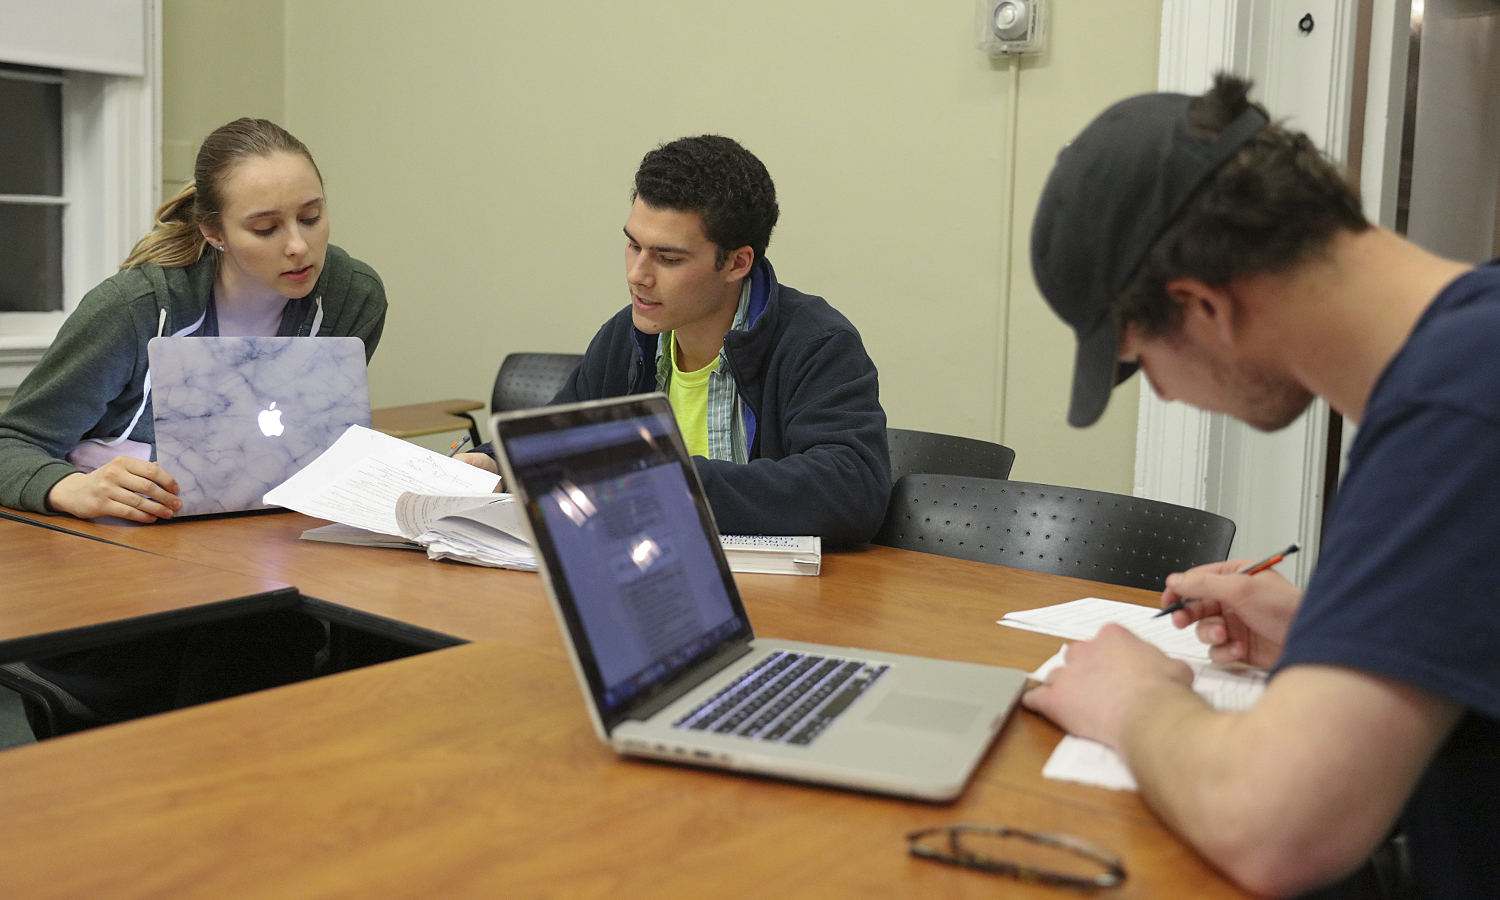 """Hannah Nelson '19, study table leader for """"Grammer and Style"""" with Associate Professor of Writing and Rhetoric Maggie Wener, works with Adrian '20 and Aldo Giannattasio '19 in Coxe Hall."""